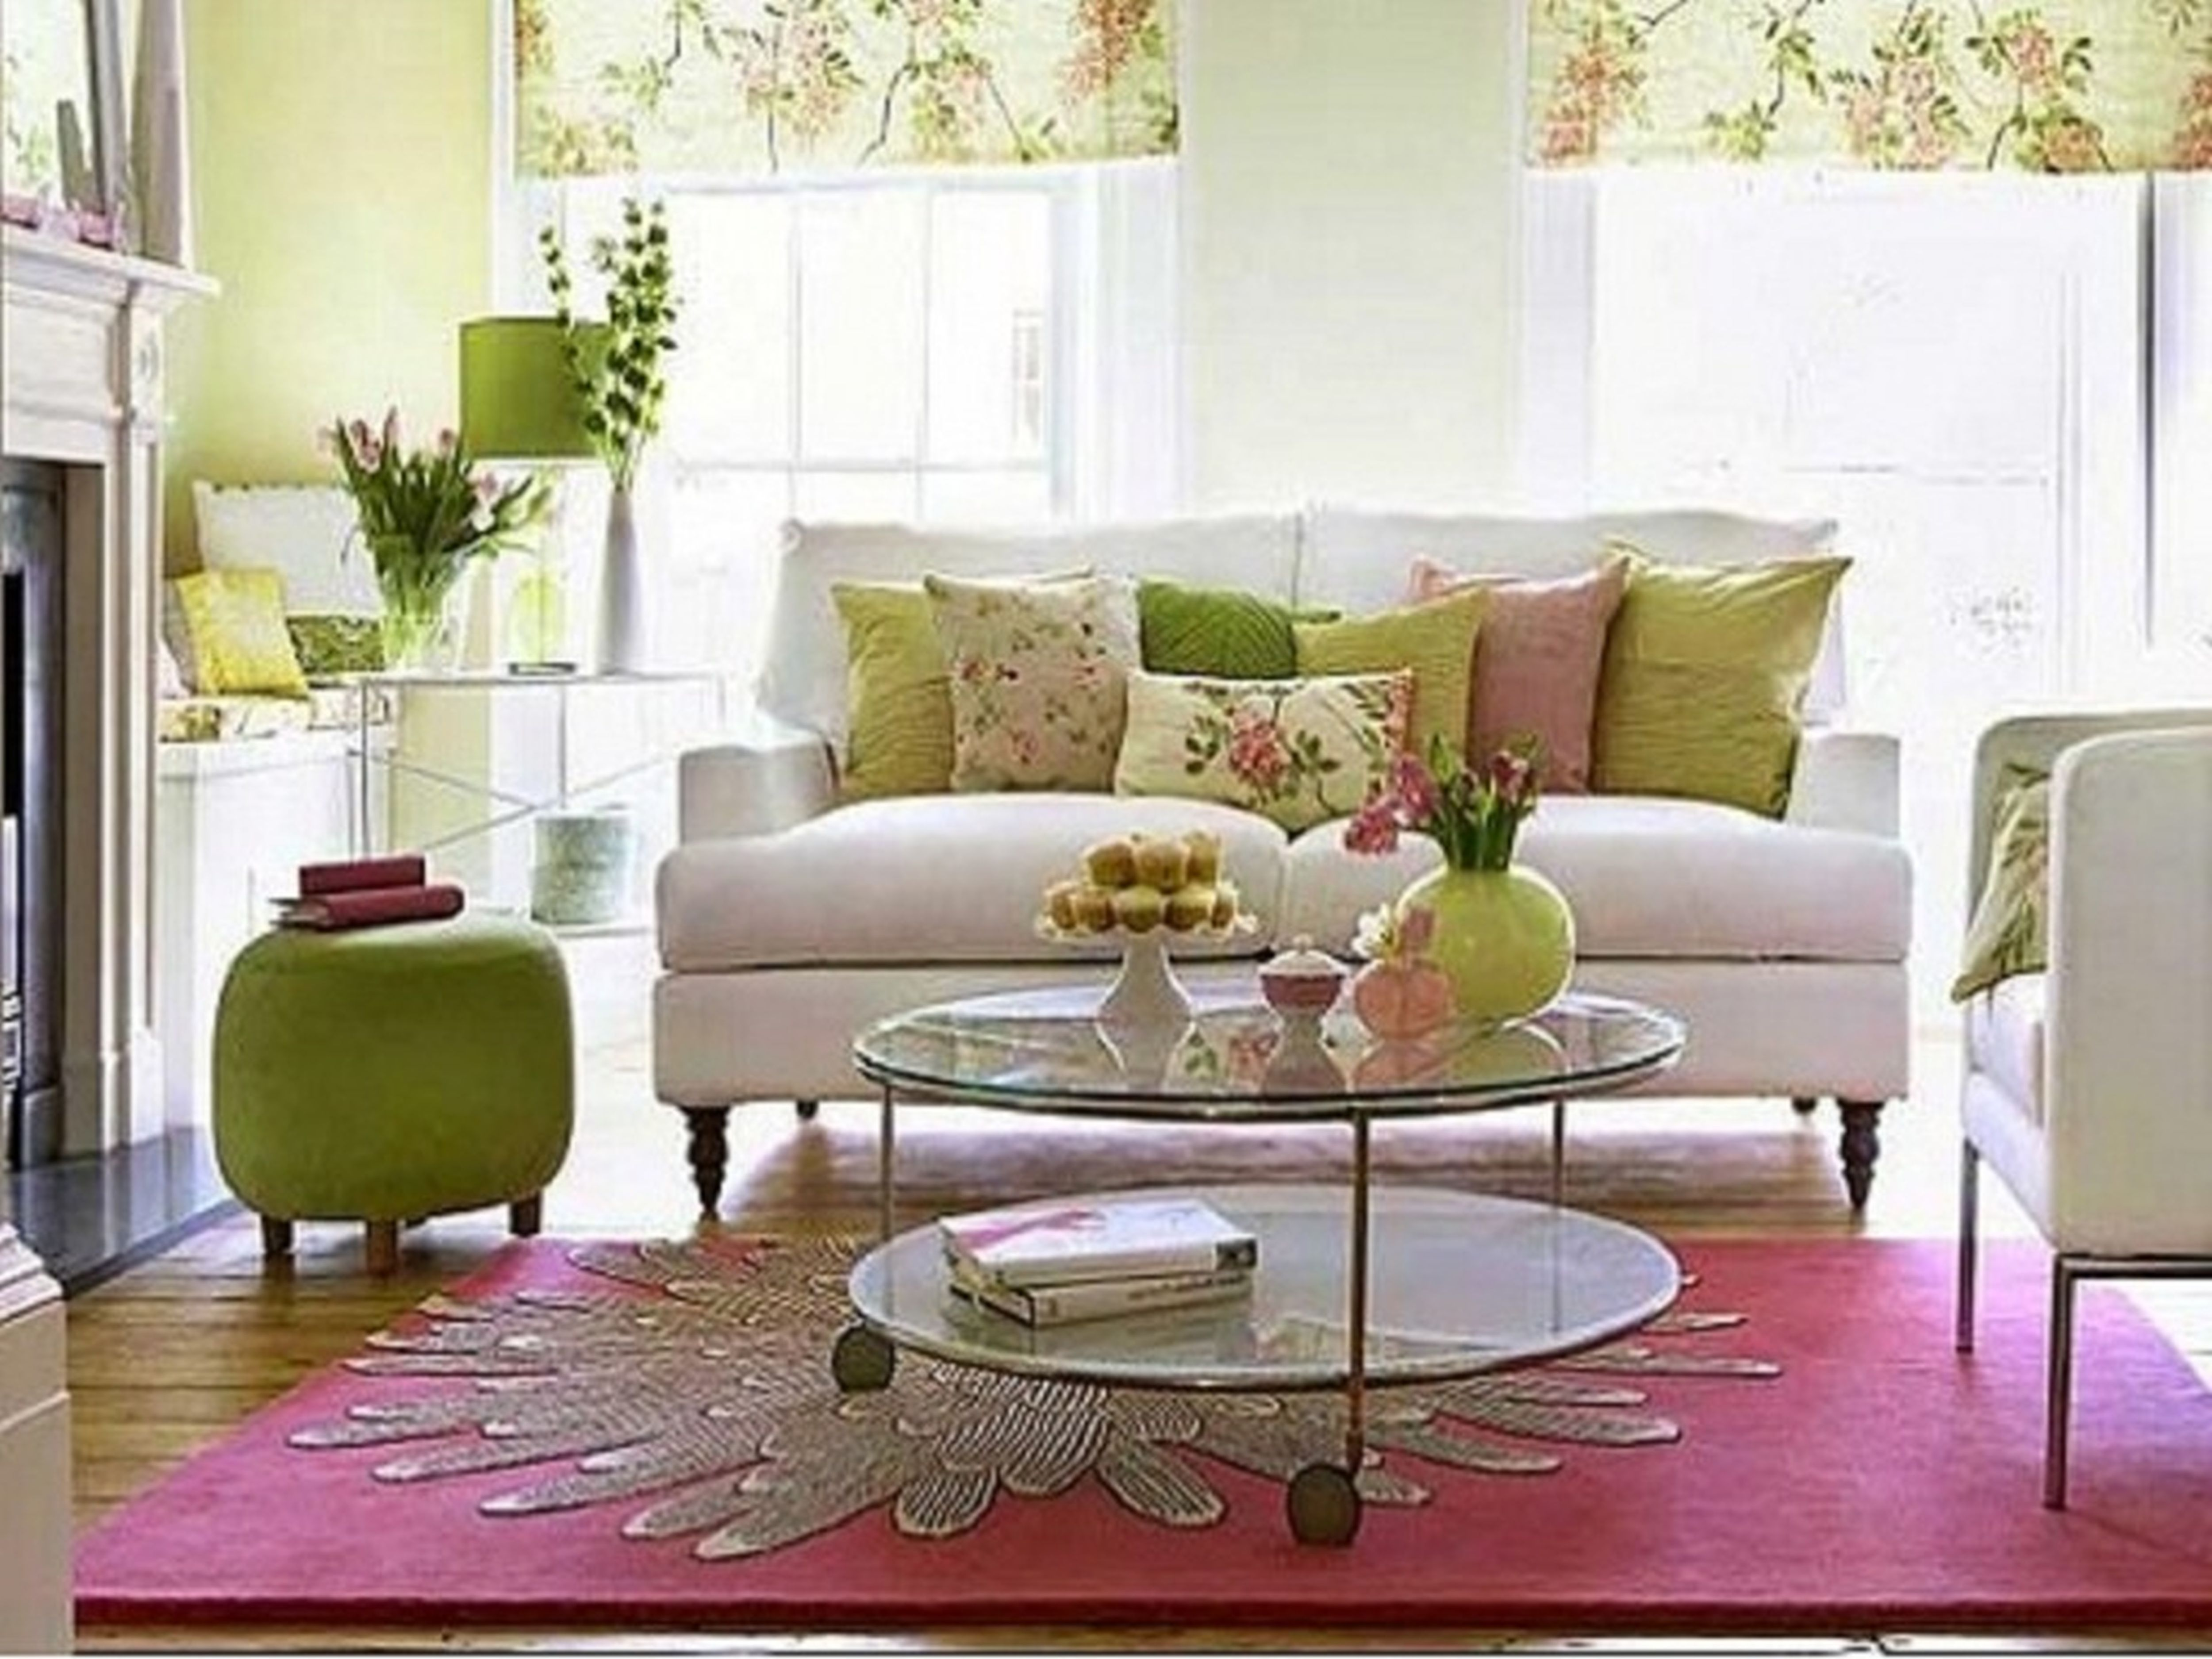 61 Best Living Room And Family Images On Pinterest